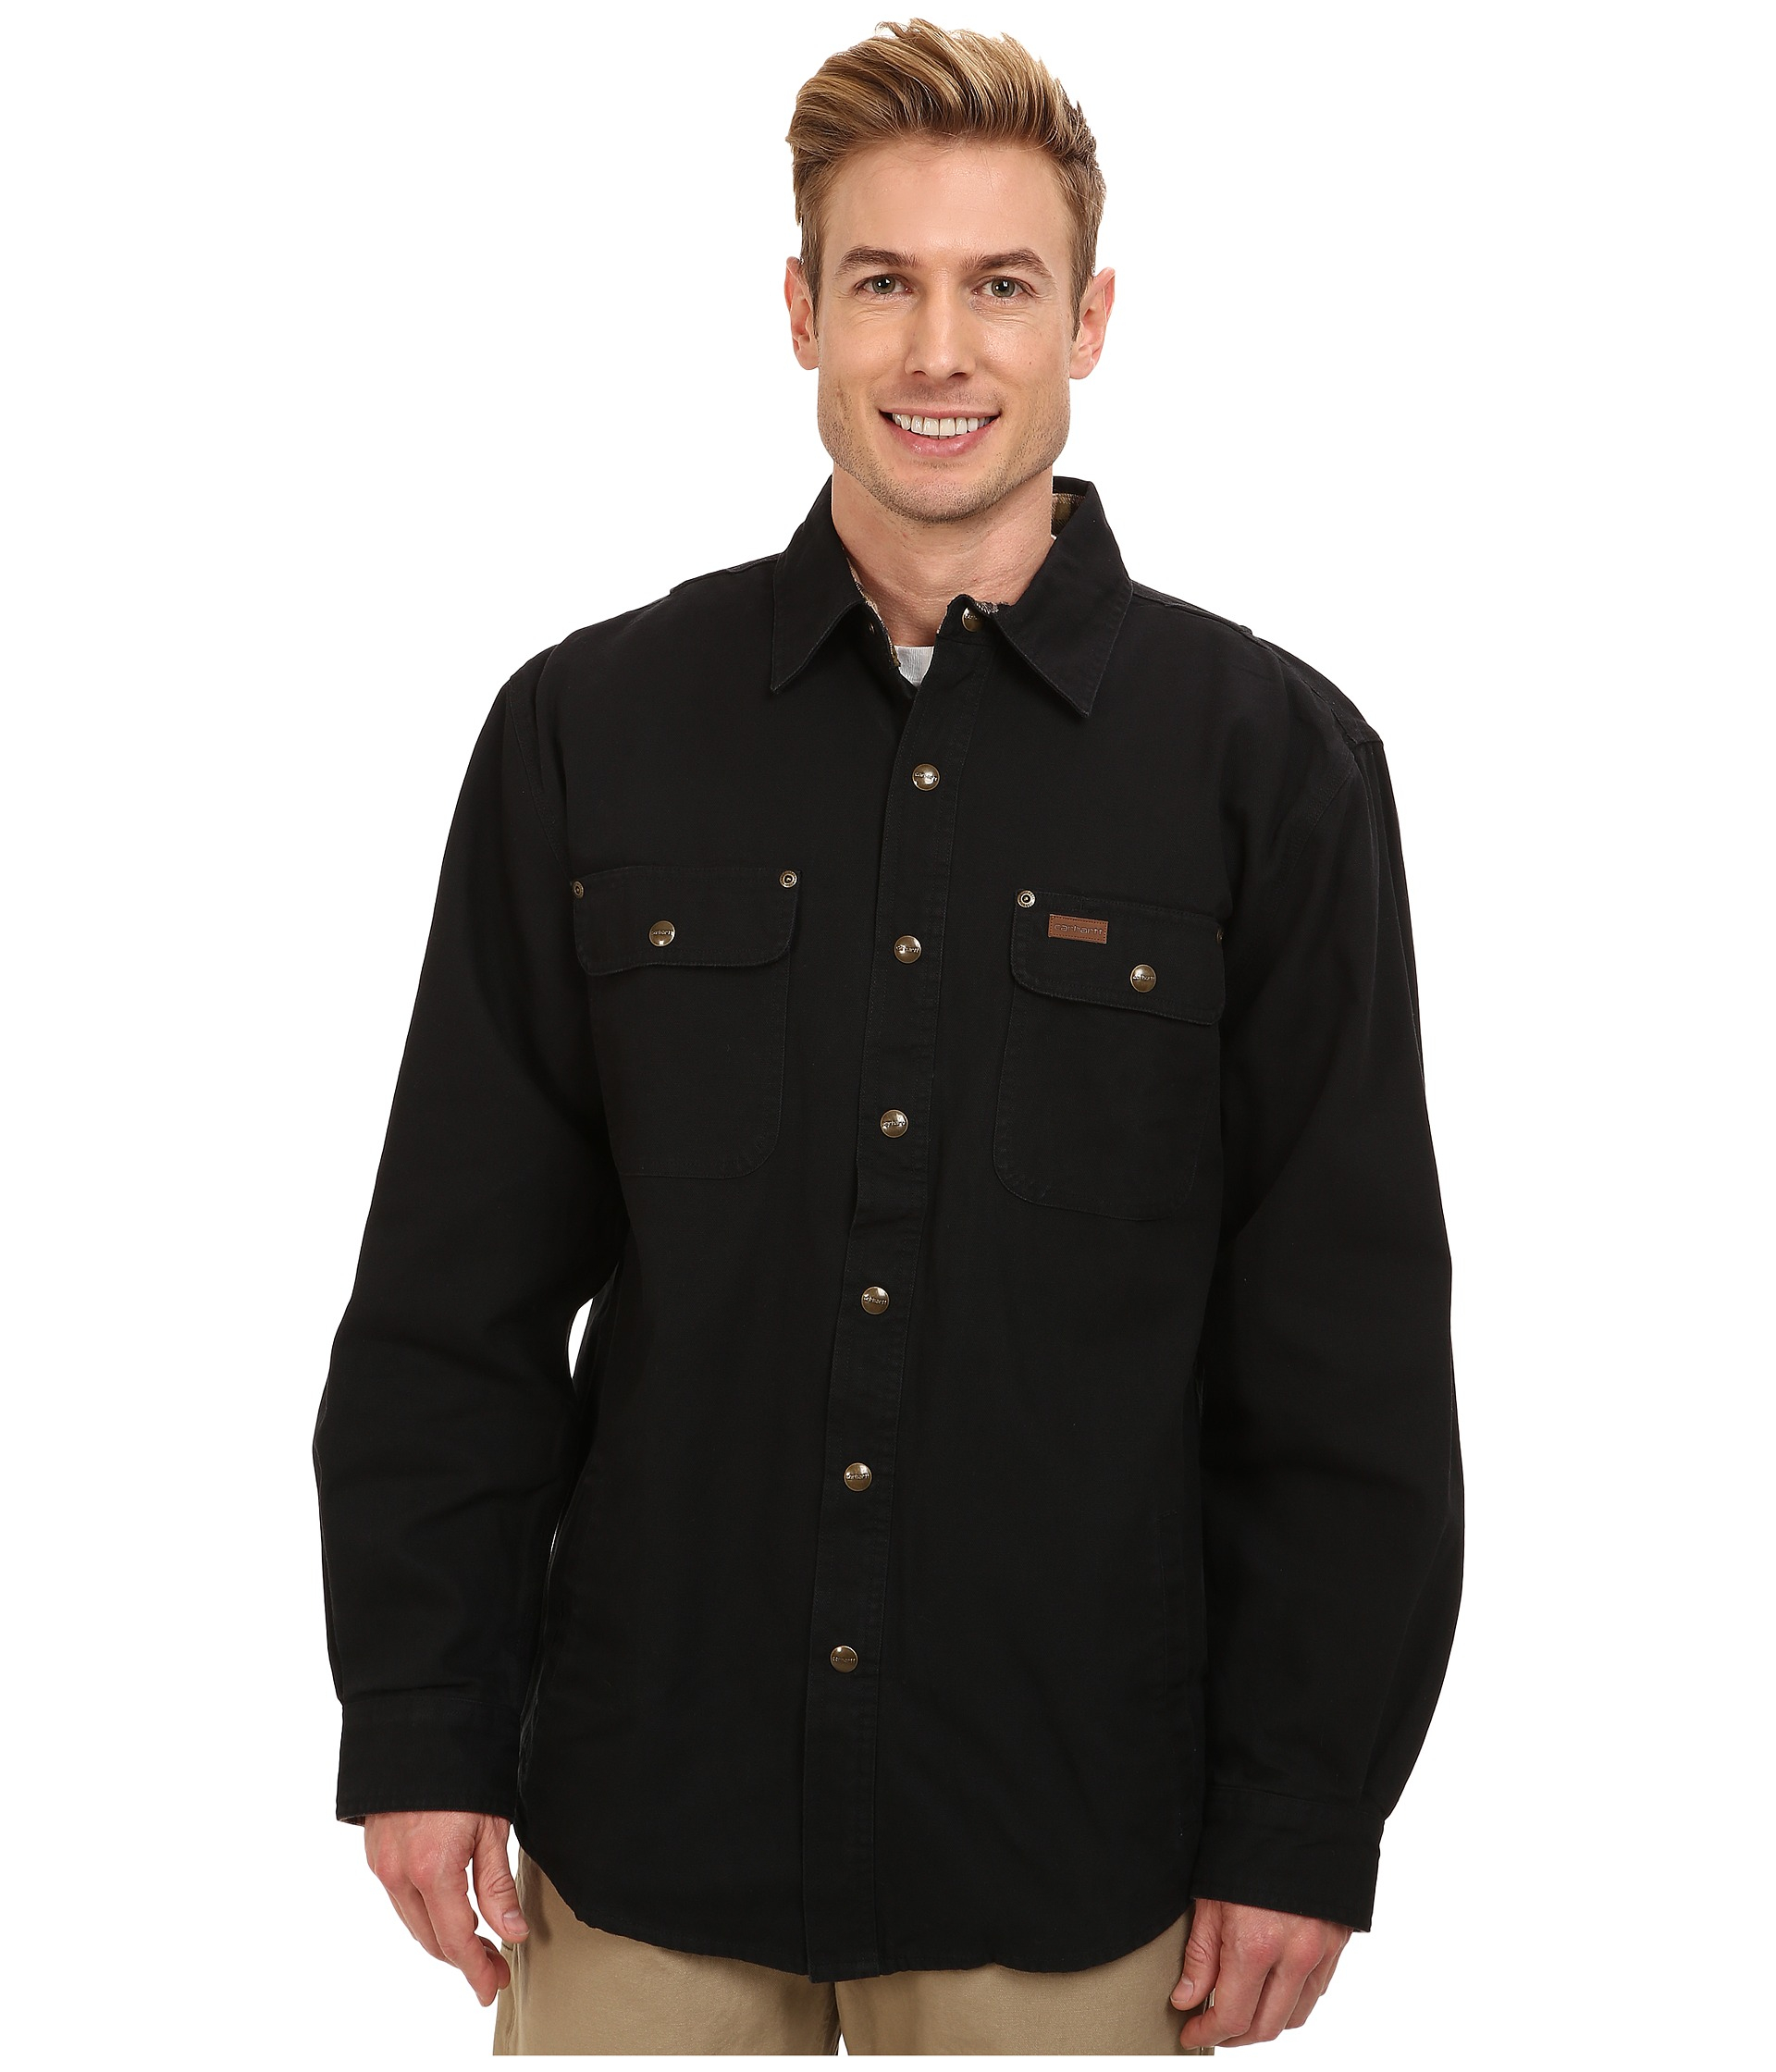 Lyst - Carhartt Weathered Canvas Shirt Jacket in Black for Men